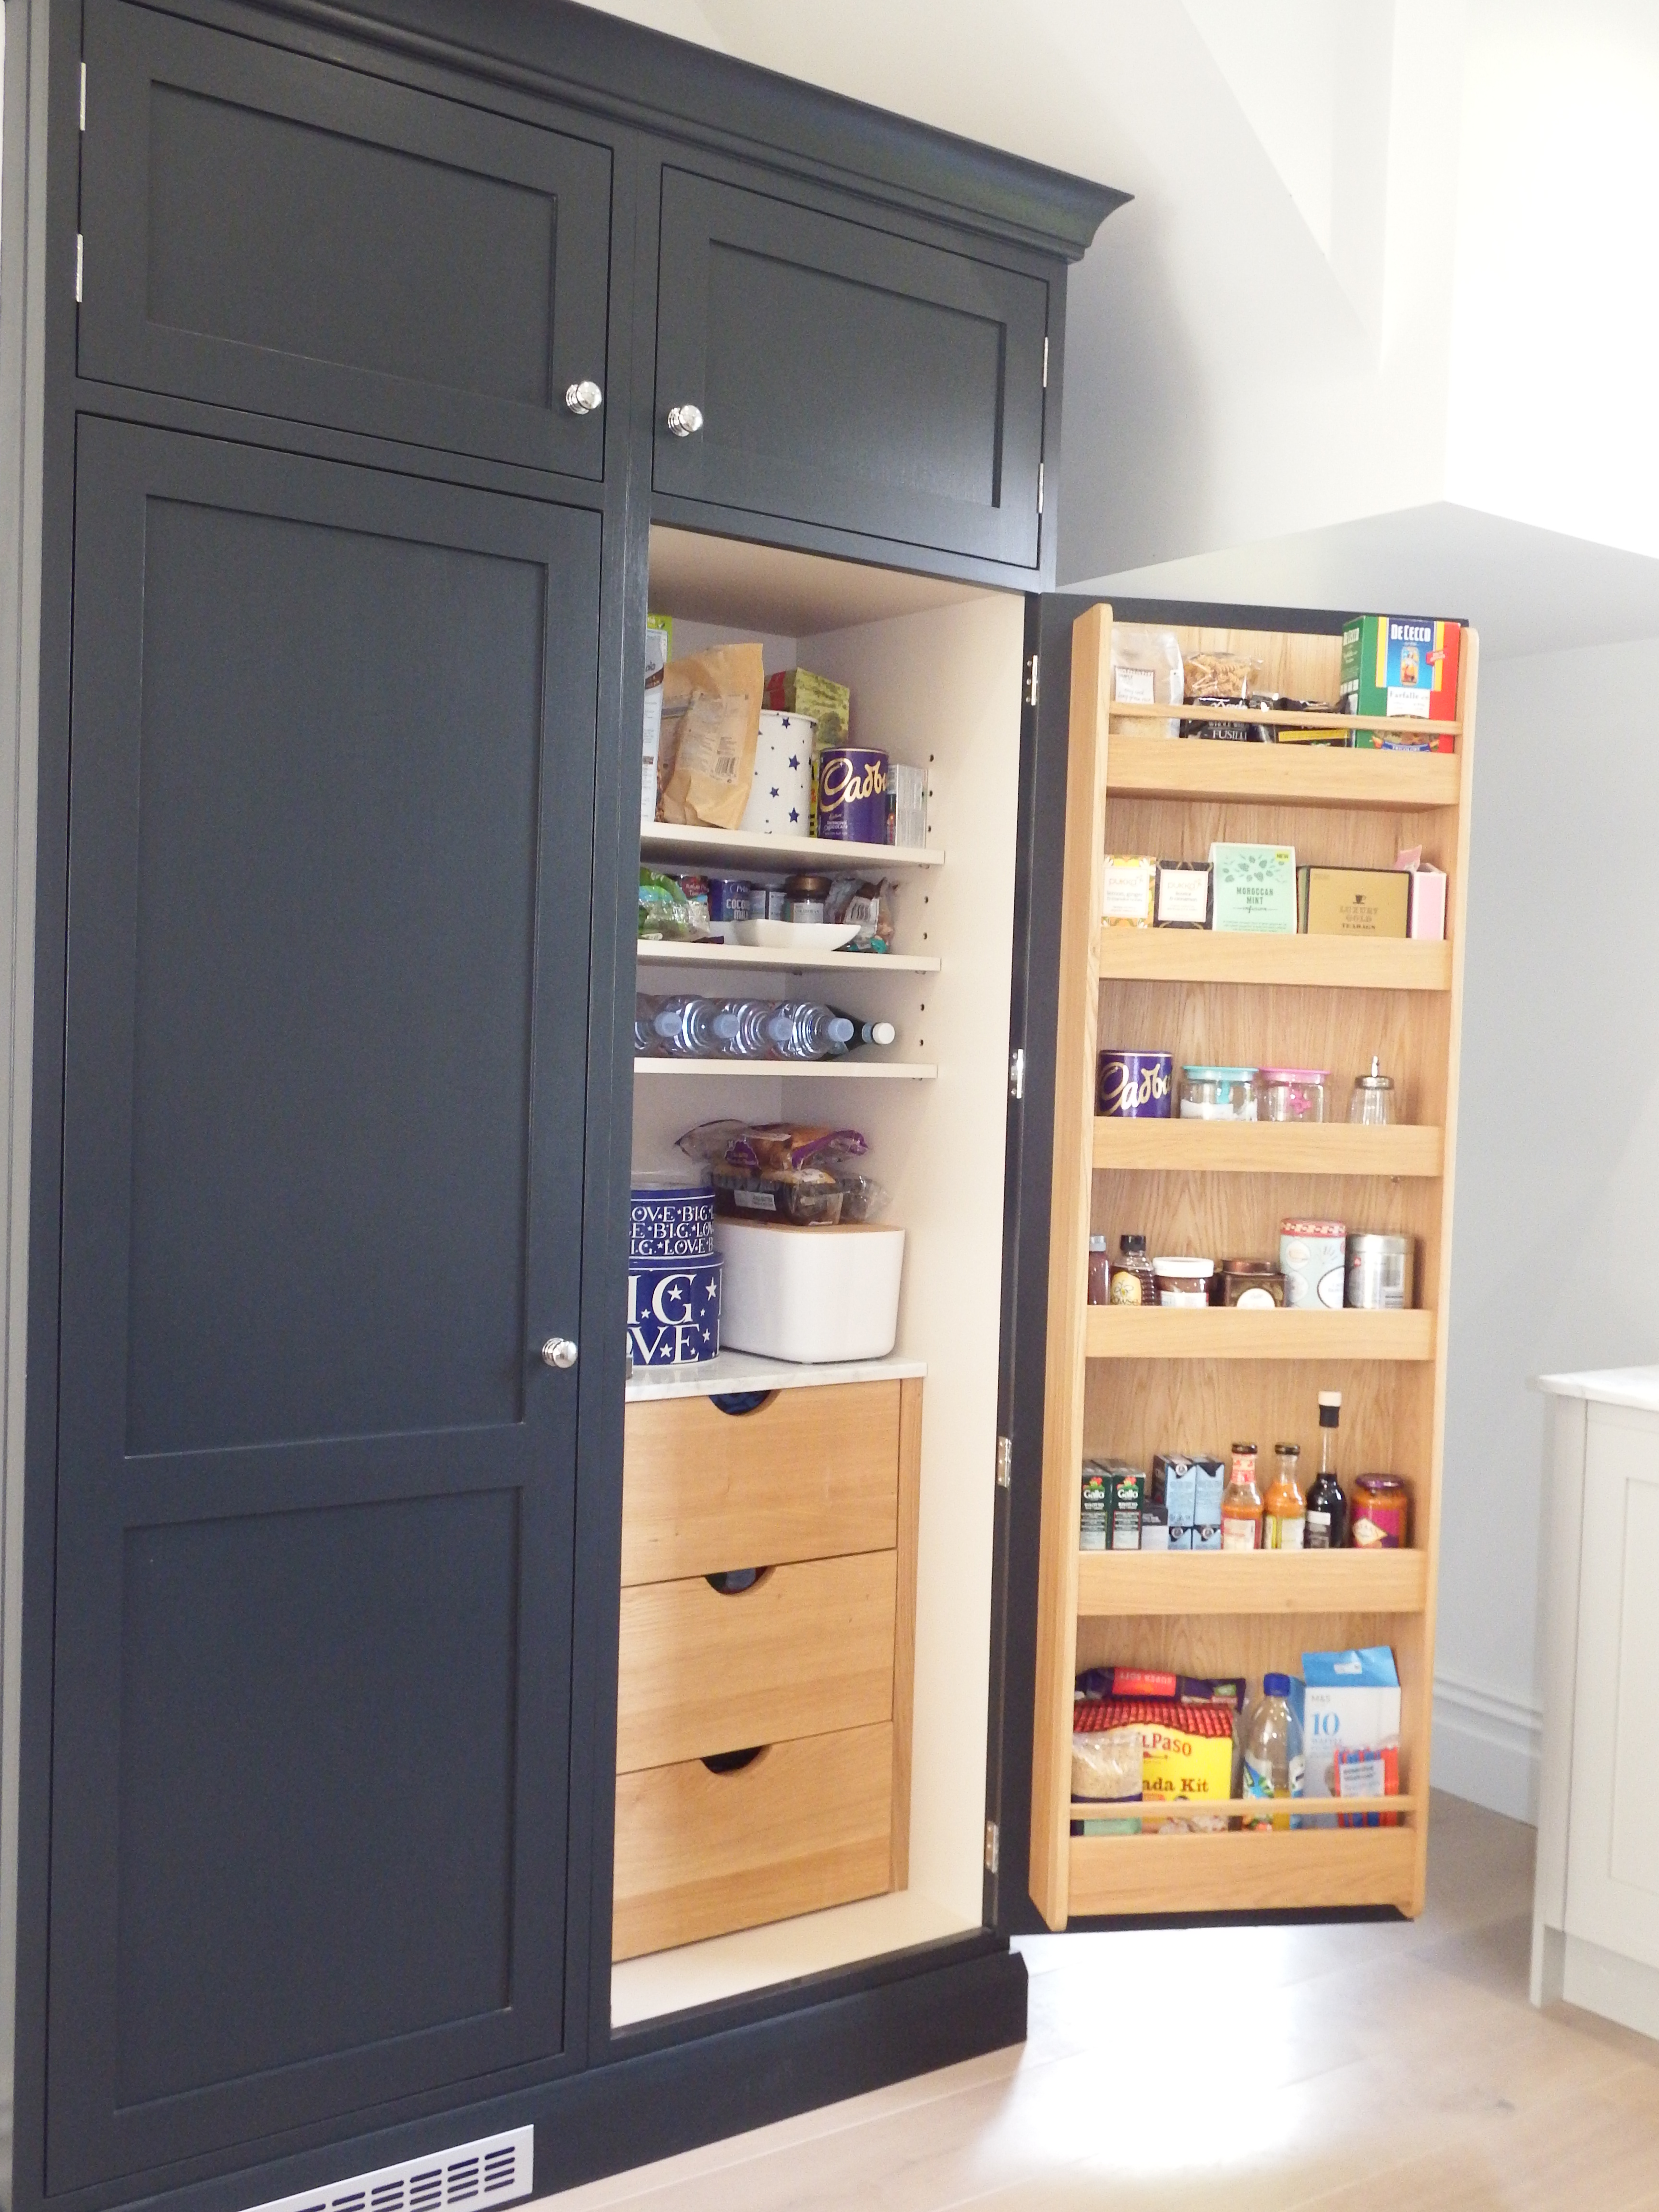 Pantry Cabinet Making A Pantry Cabinet With Harrogate